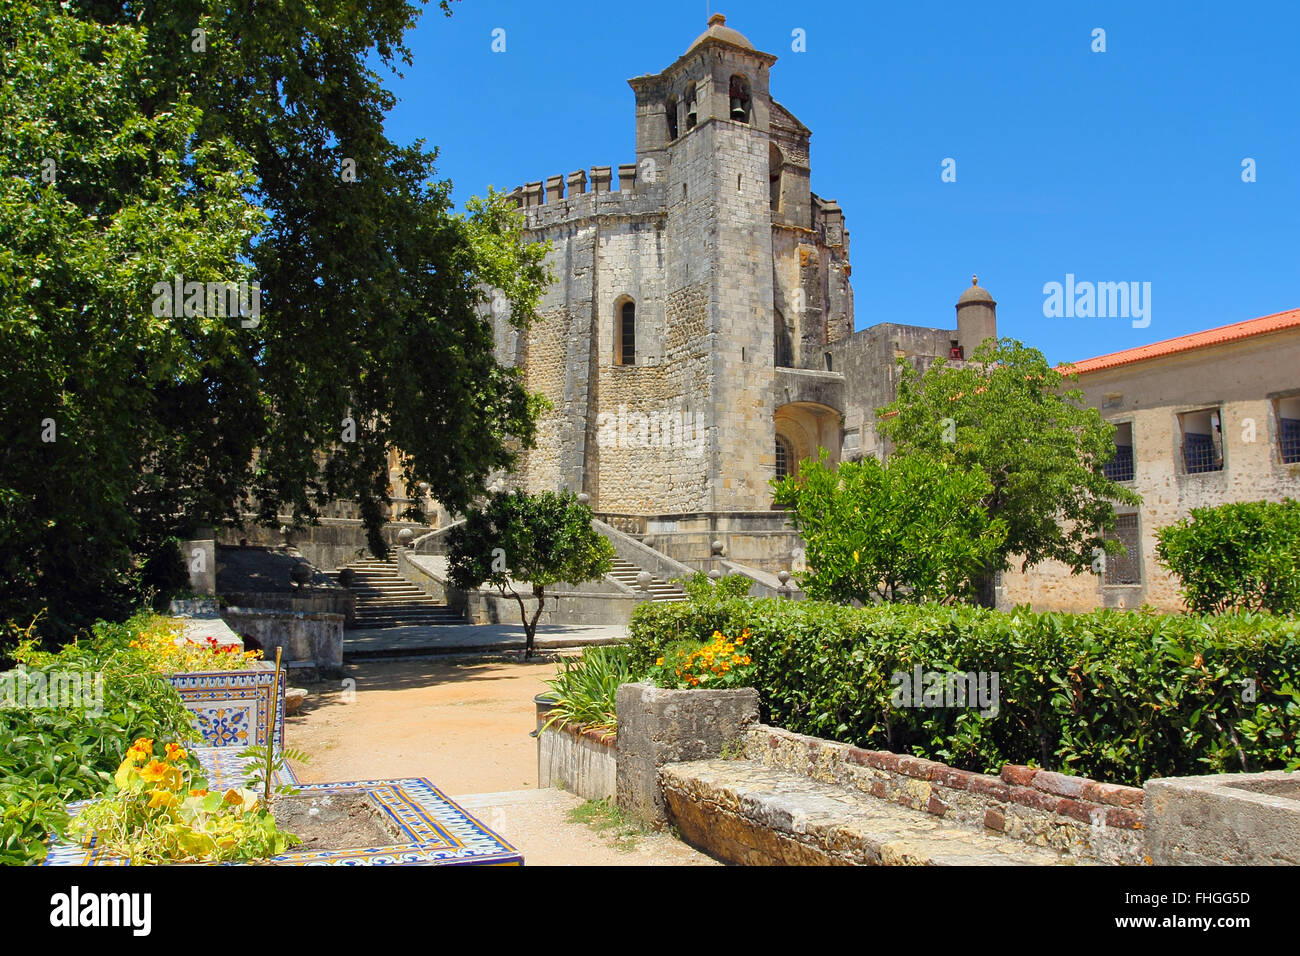 Tomar Templar knights fortress from the garden . Portugal - Stock Image